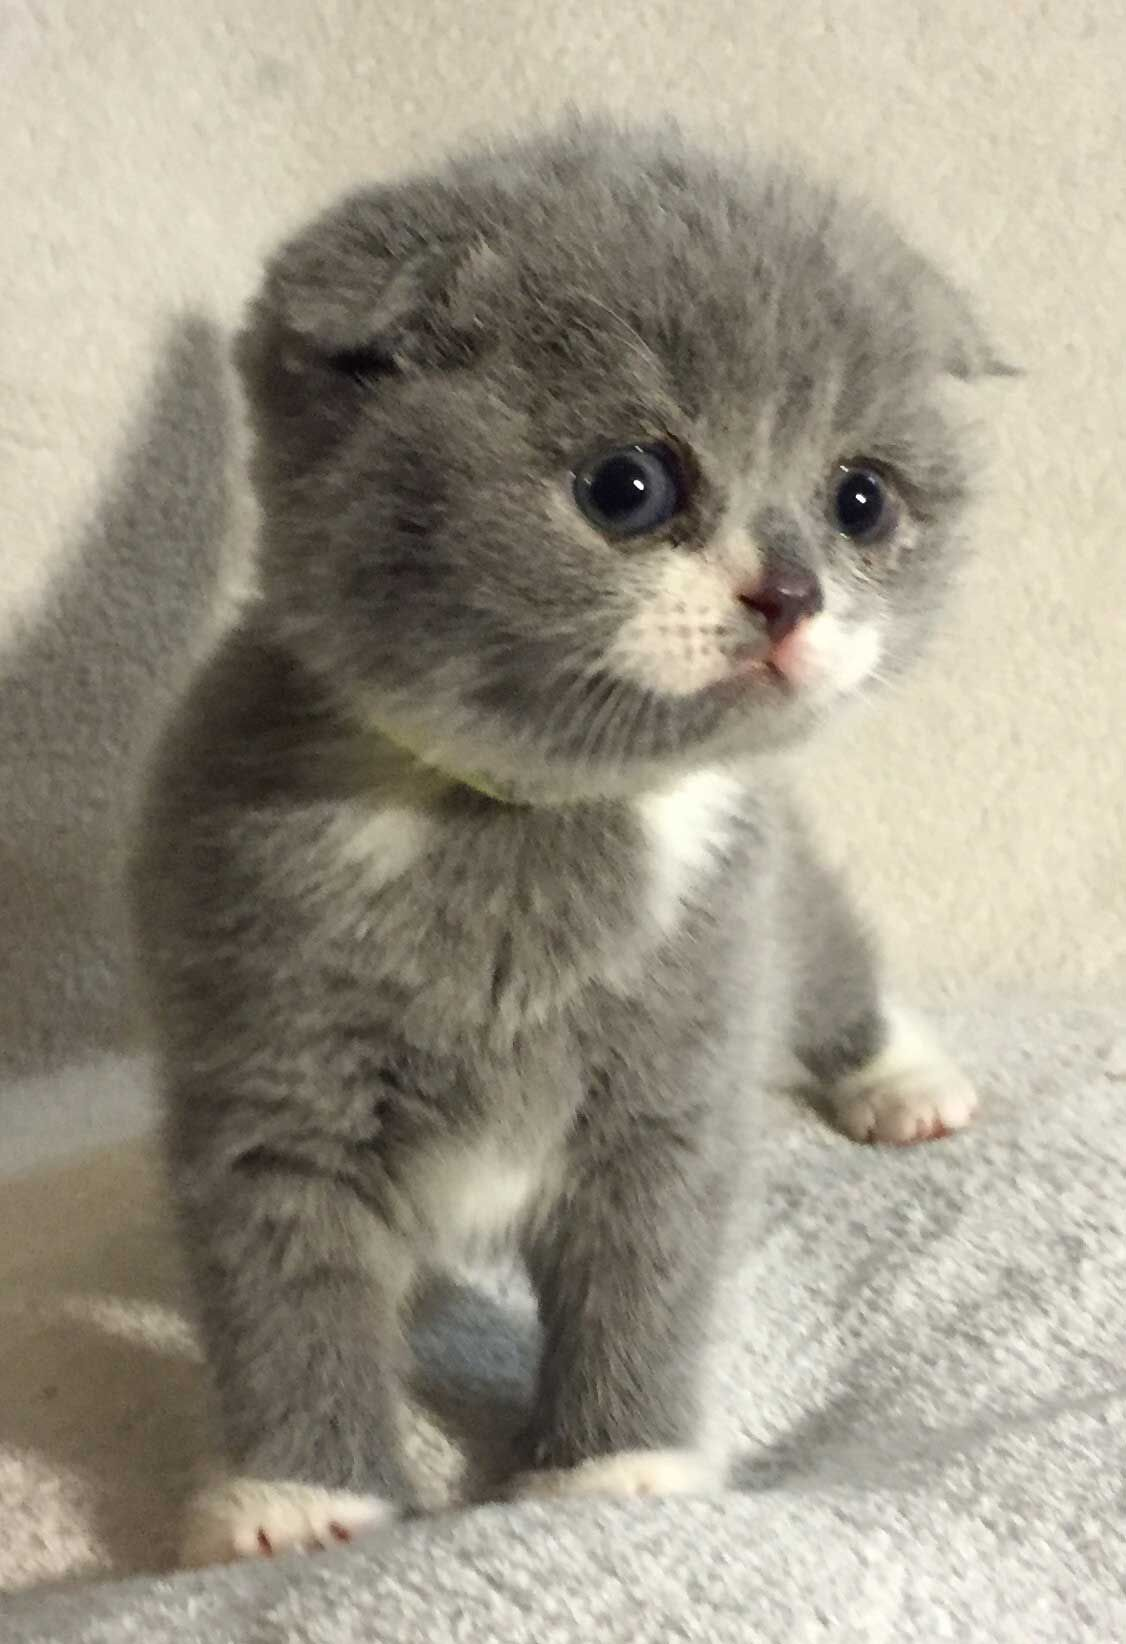 Scottish Fold Kittens For Sale Munchkin Kitten Scottish Fold Kittens Munchkin Cat